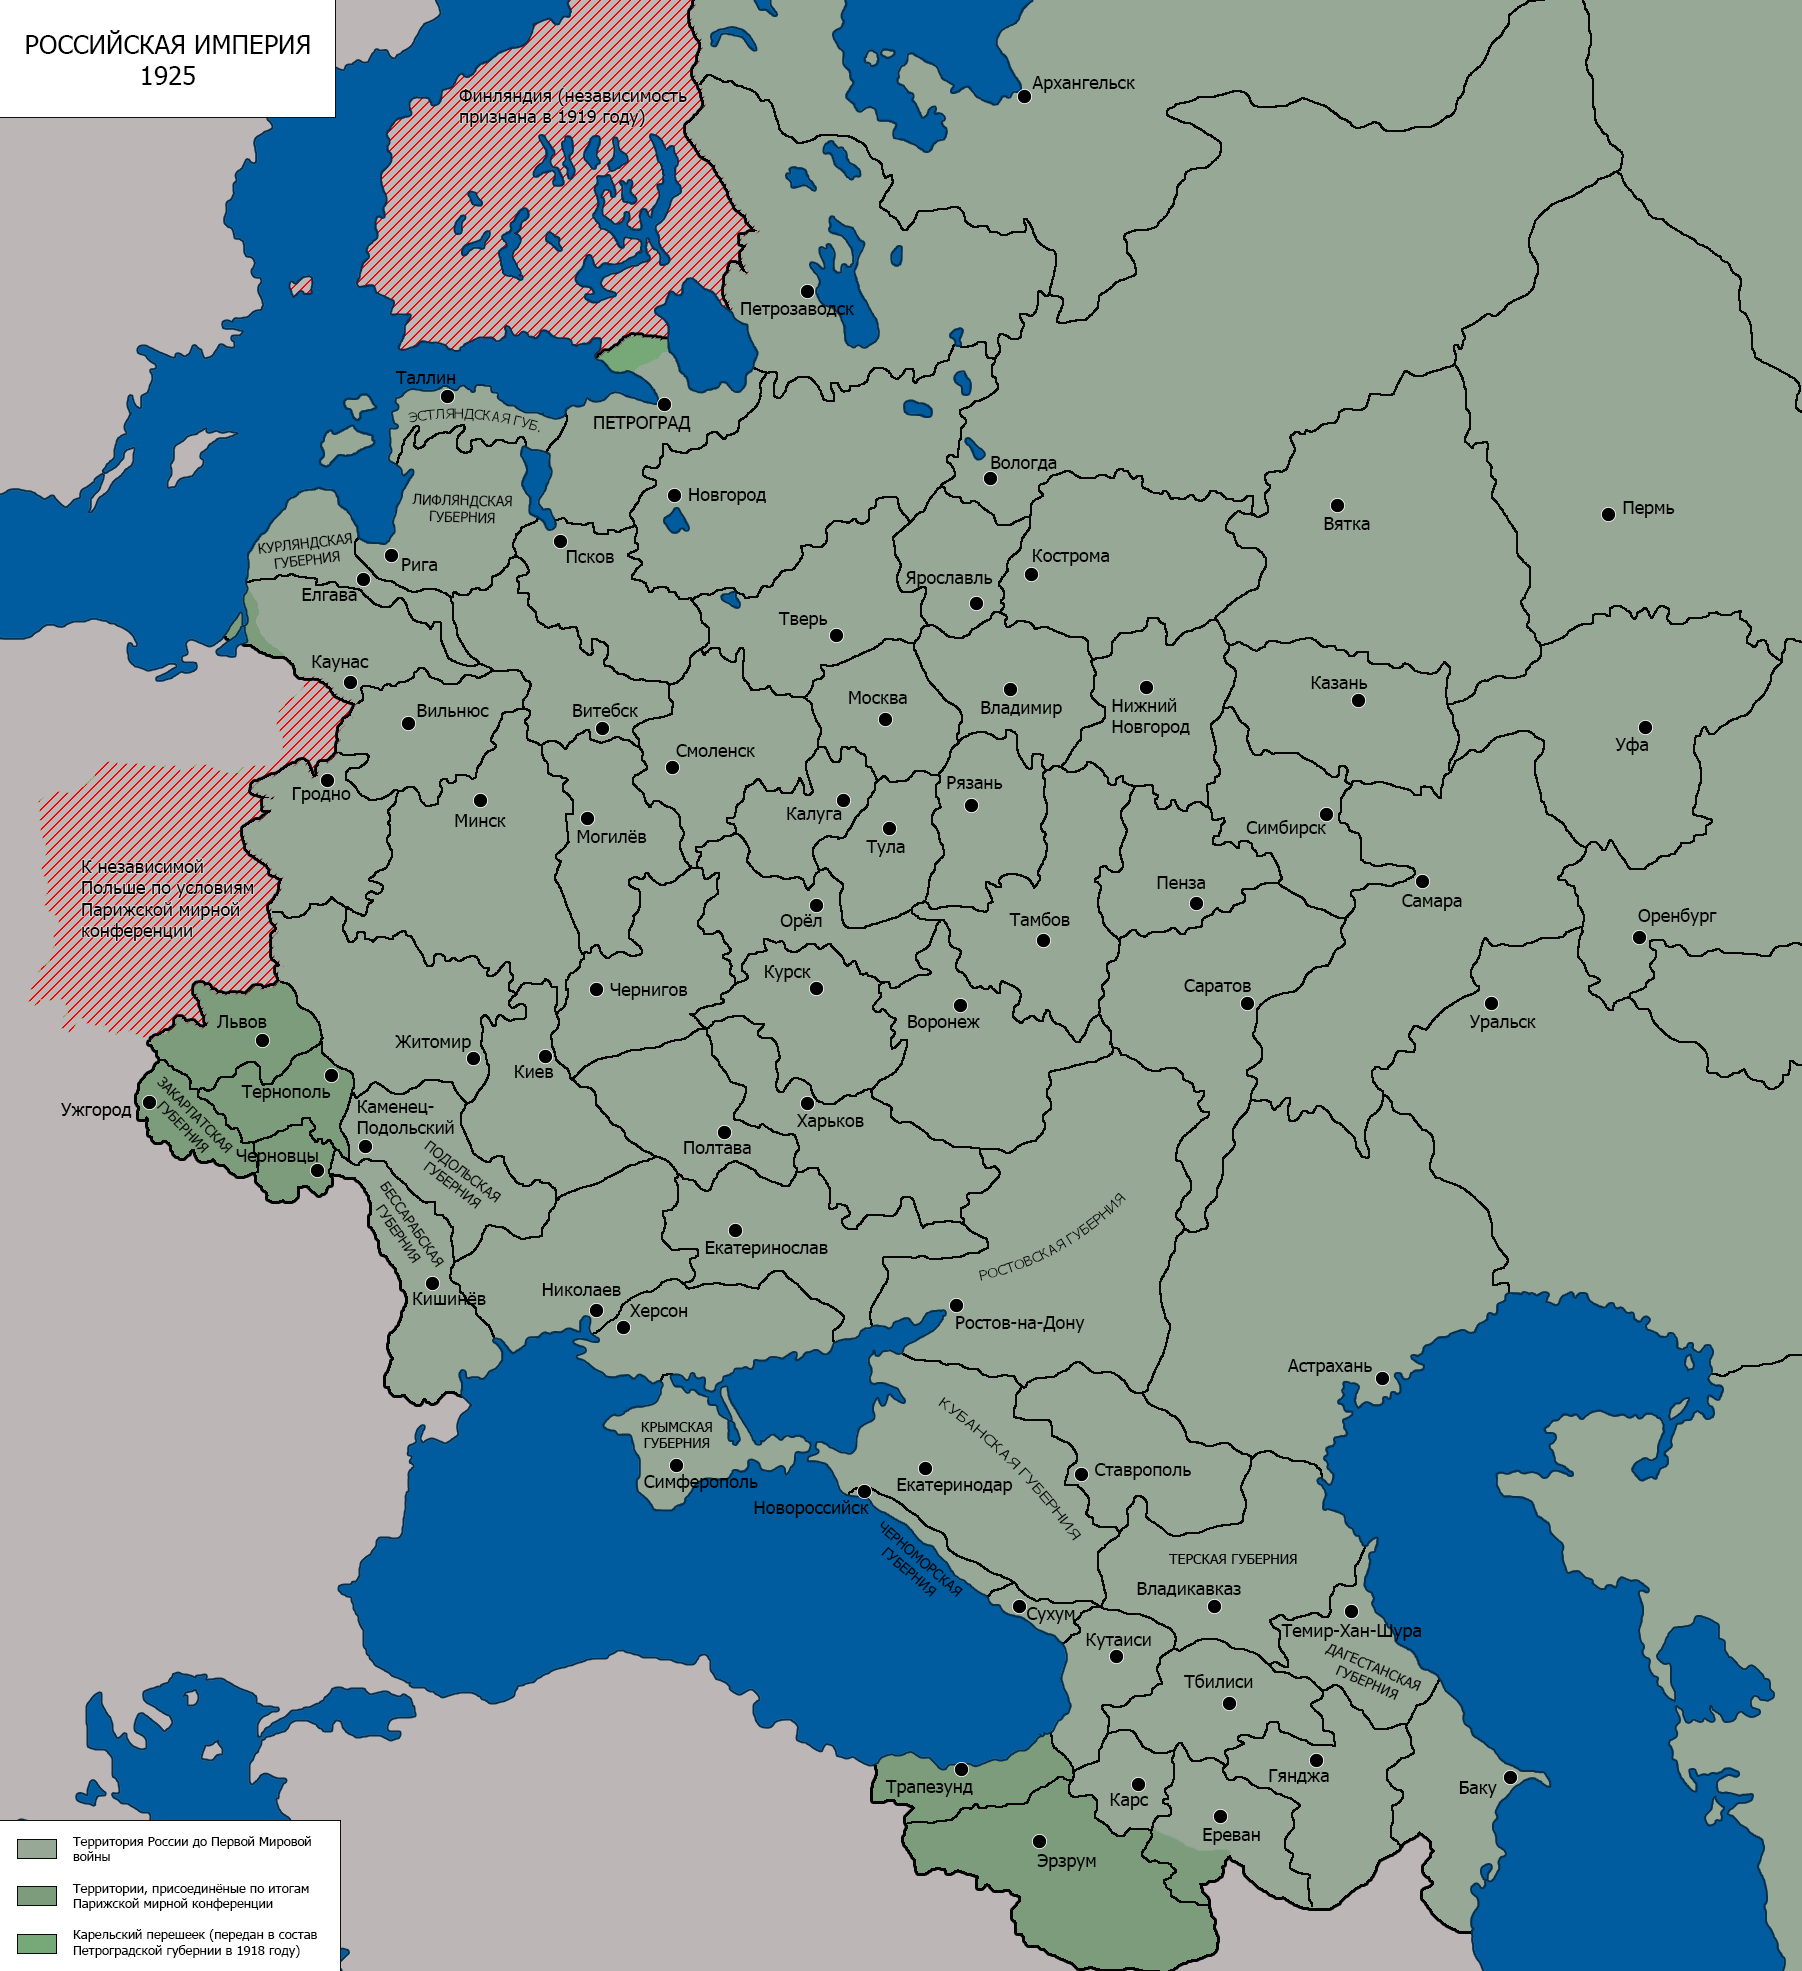 The Surviving Russian Empire 1925 By Degtyarev95 Historical Maps Alternate History Fantasy Map